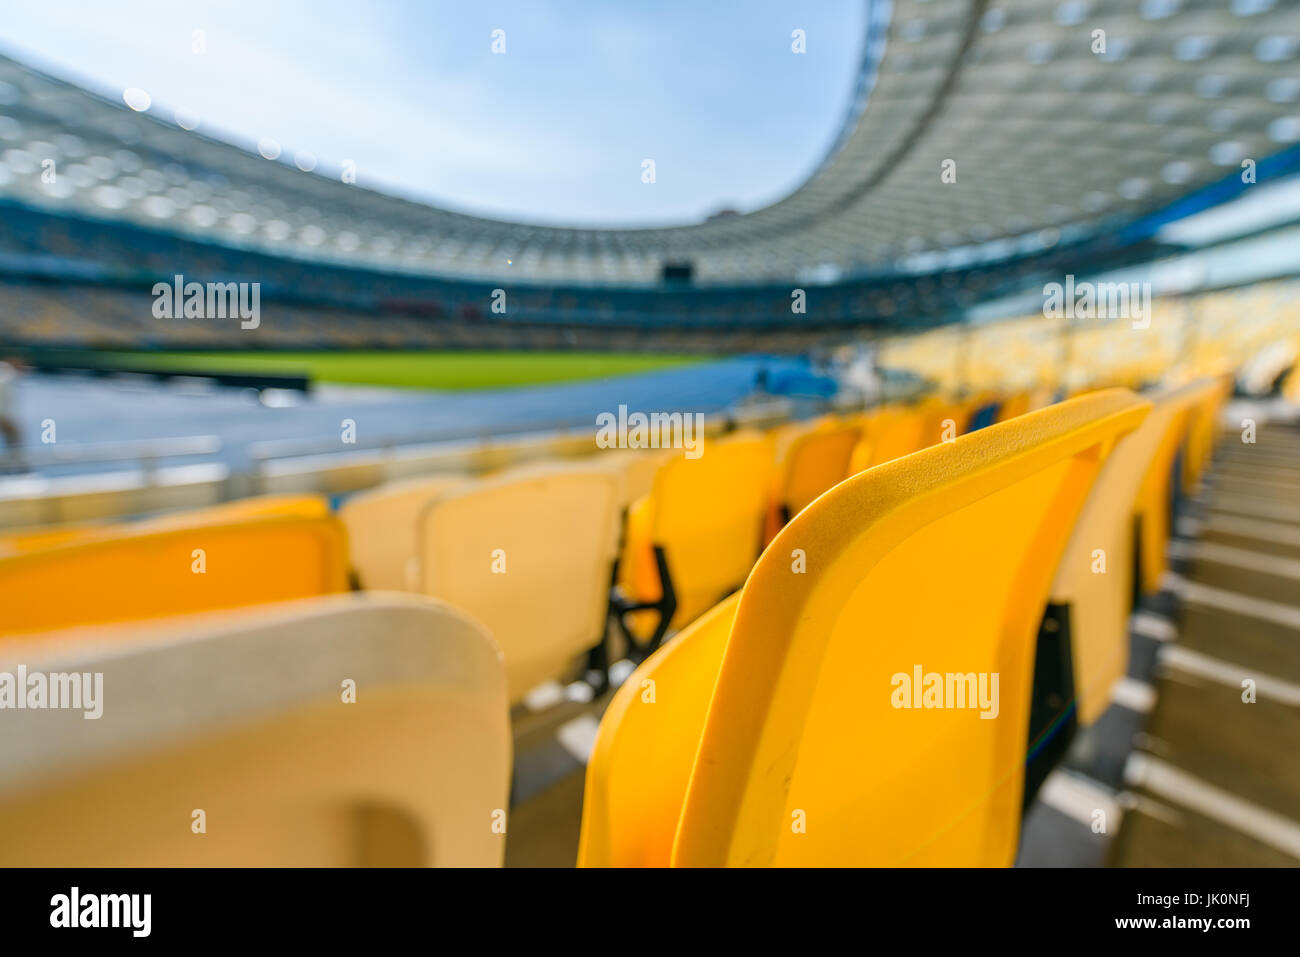 selective focus of yellow stadium seats on football stadium - Stock Image